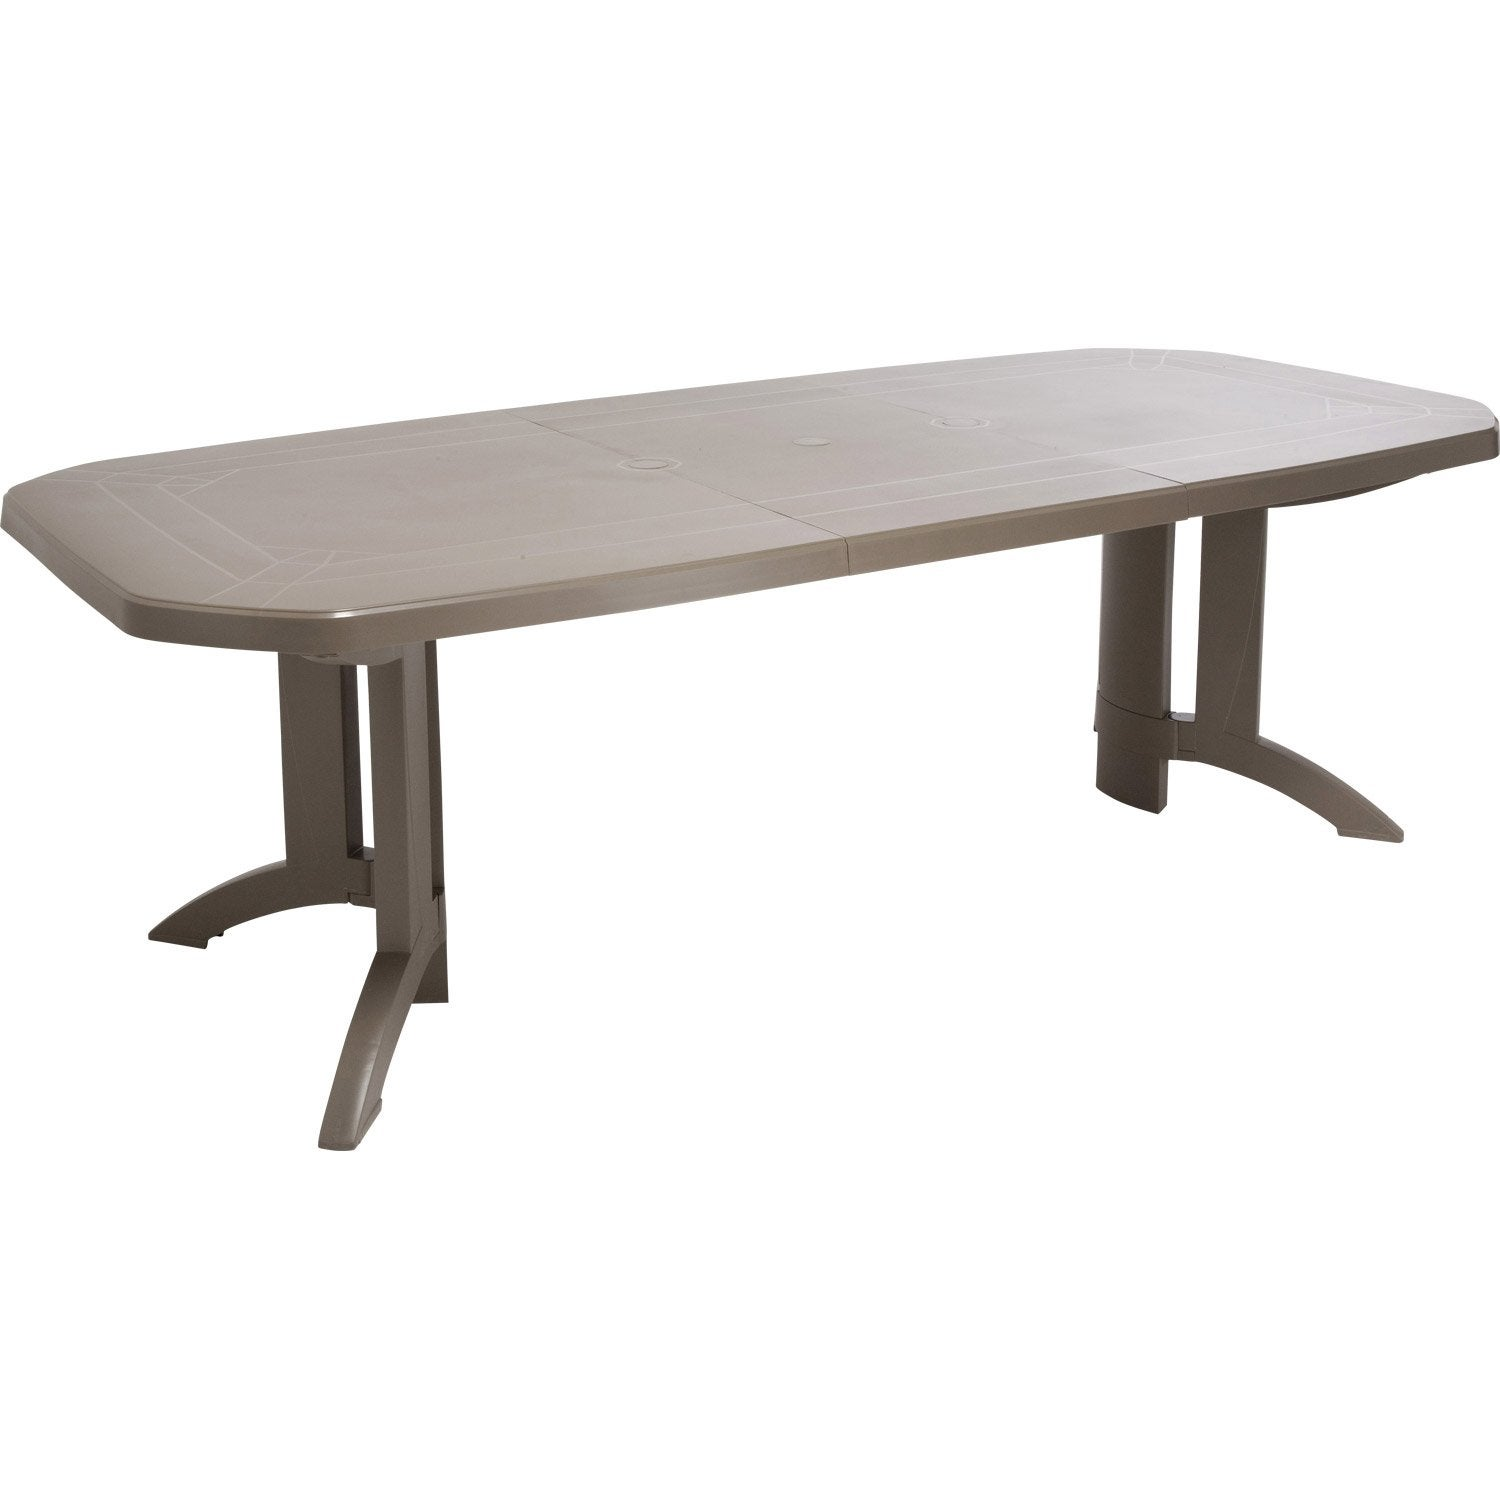 Table de jardin grosfillex v ga rectangulaire taupe 10 for Table de jardin pliante plastique